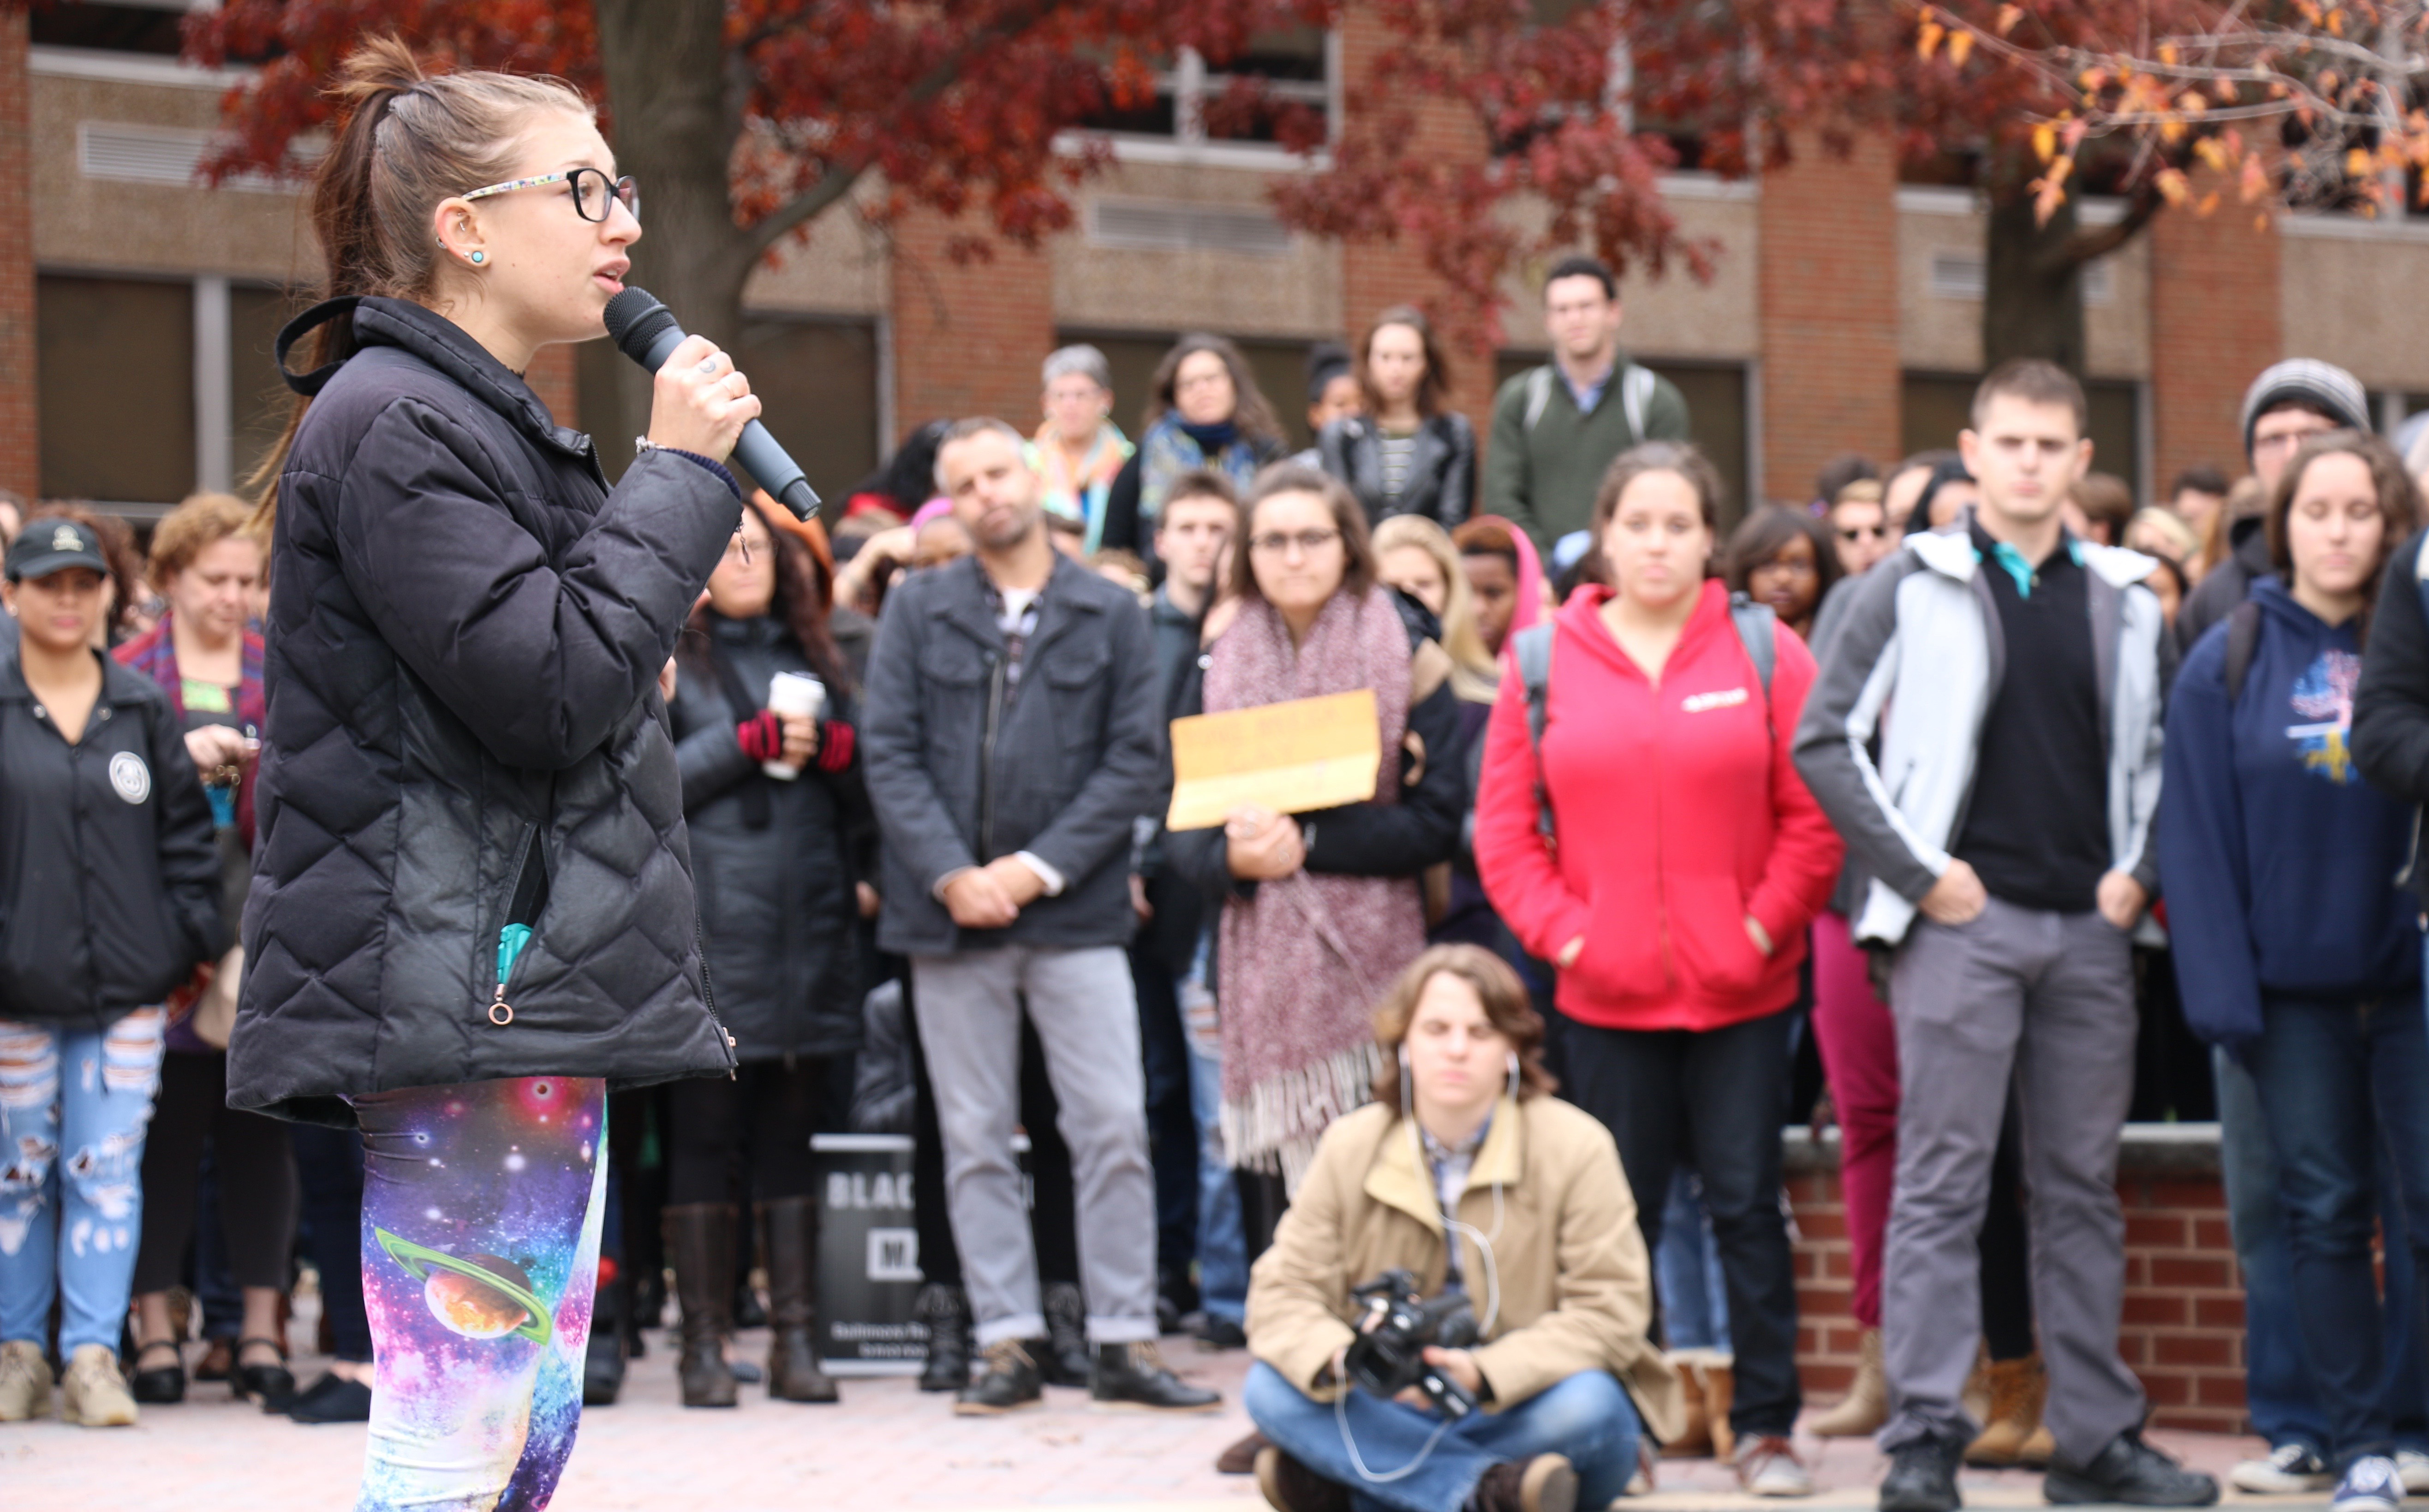 An estimated 300 students staged a walkout of classes Monday at Towson University to express their opposition to President-elect Donald Trump. Photo by Tracy Smith.